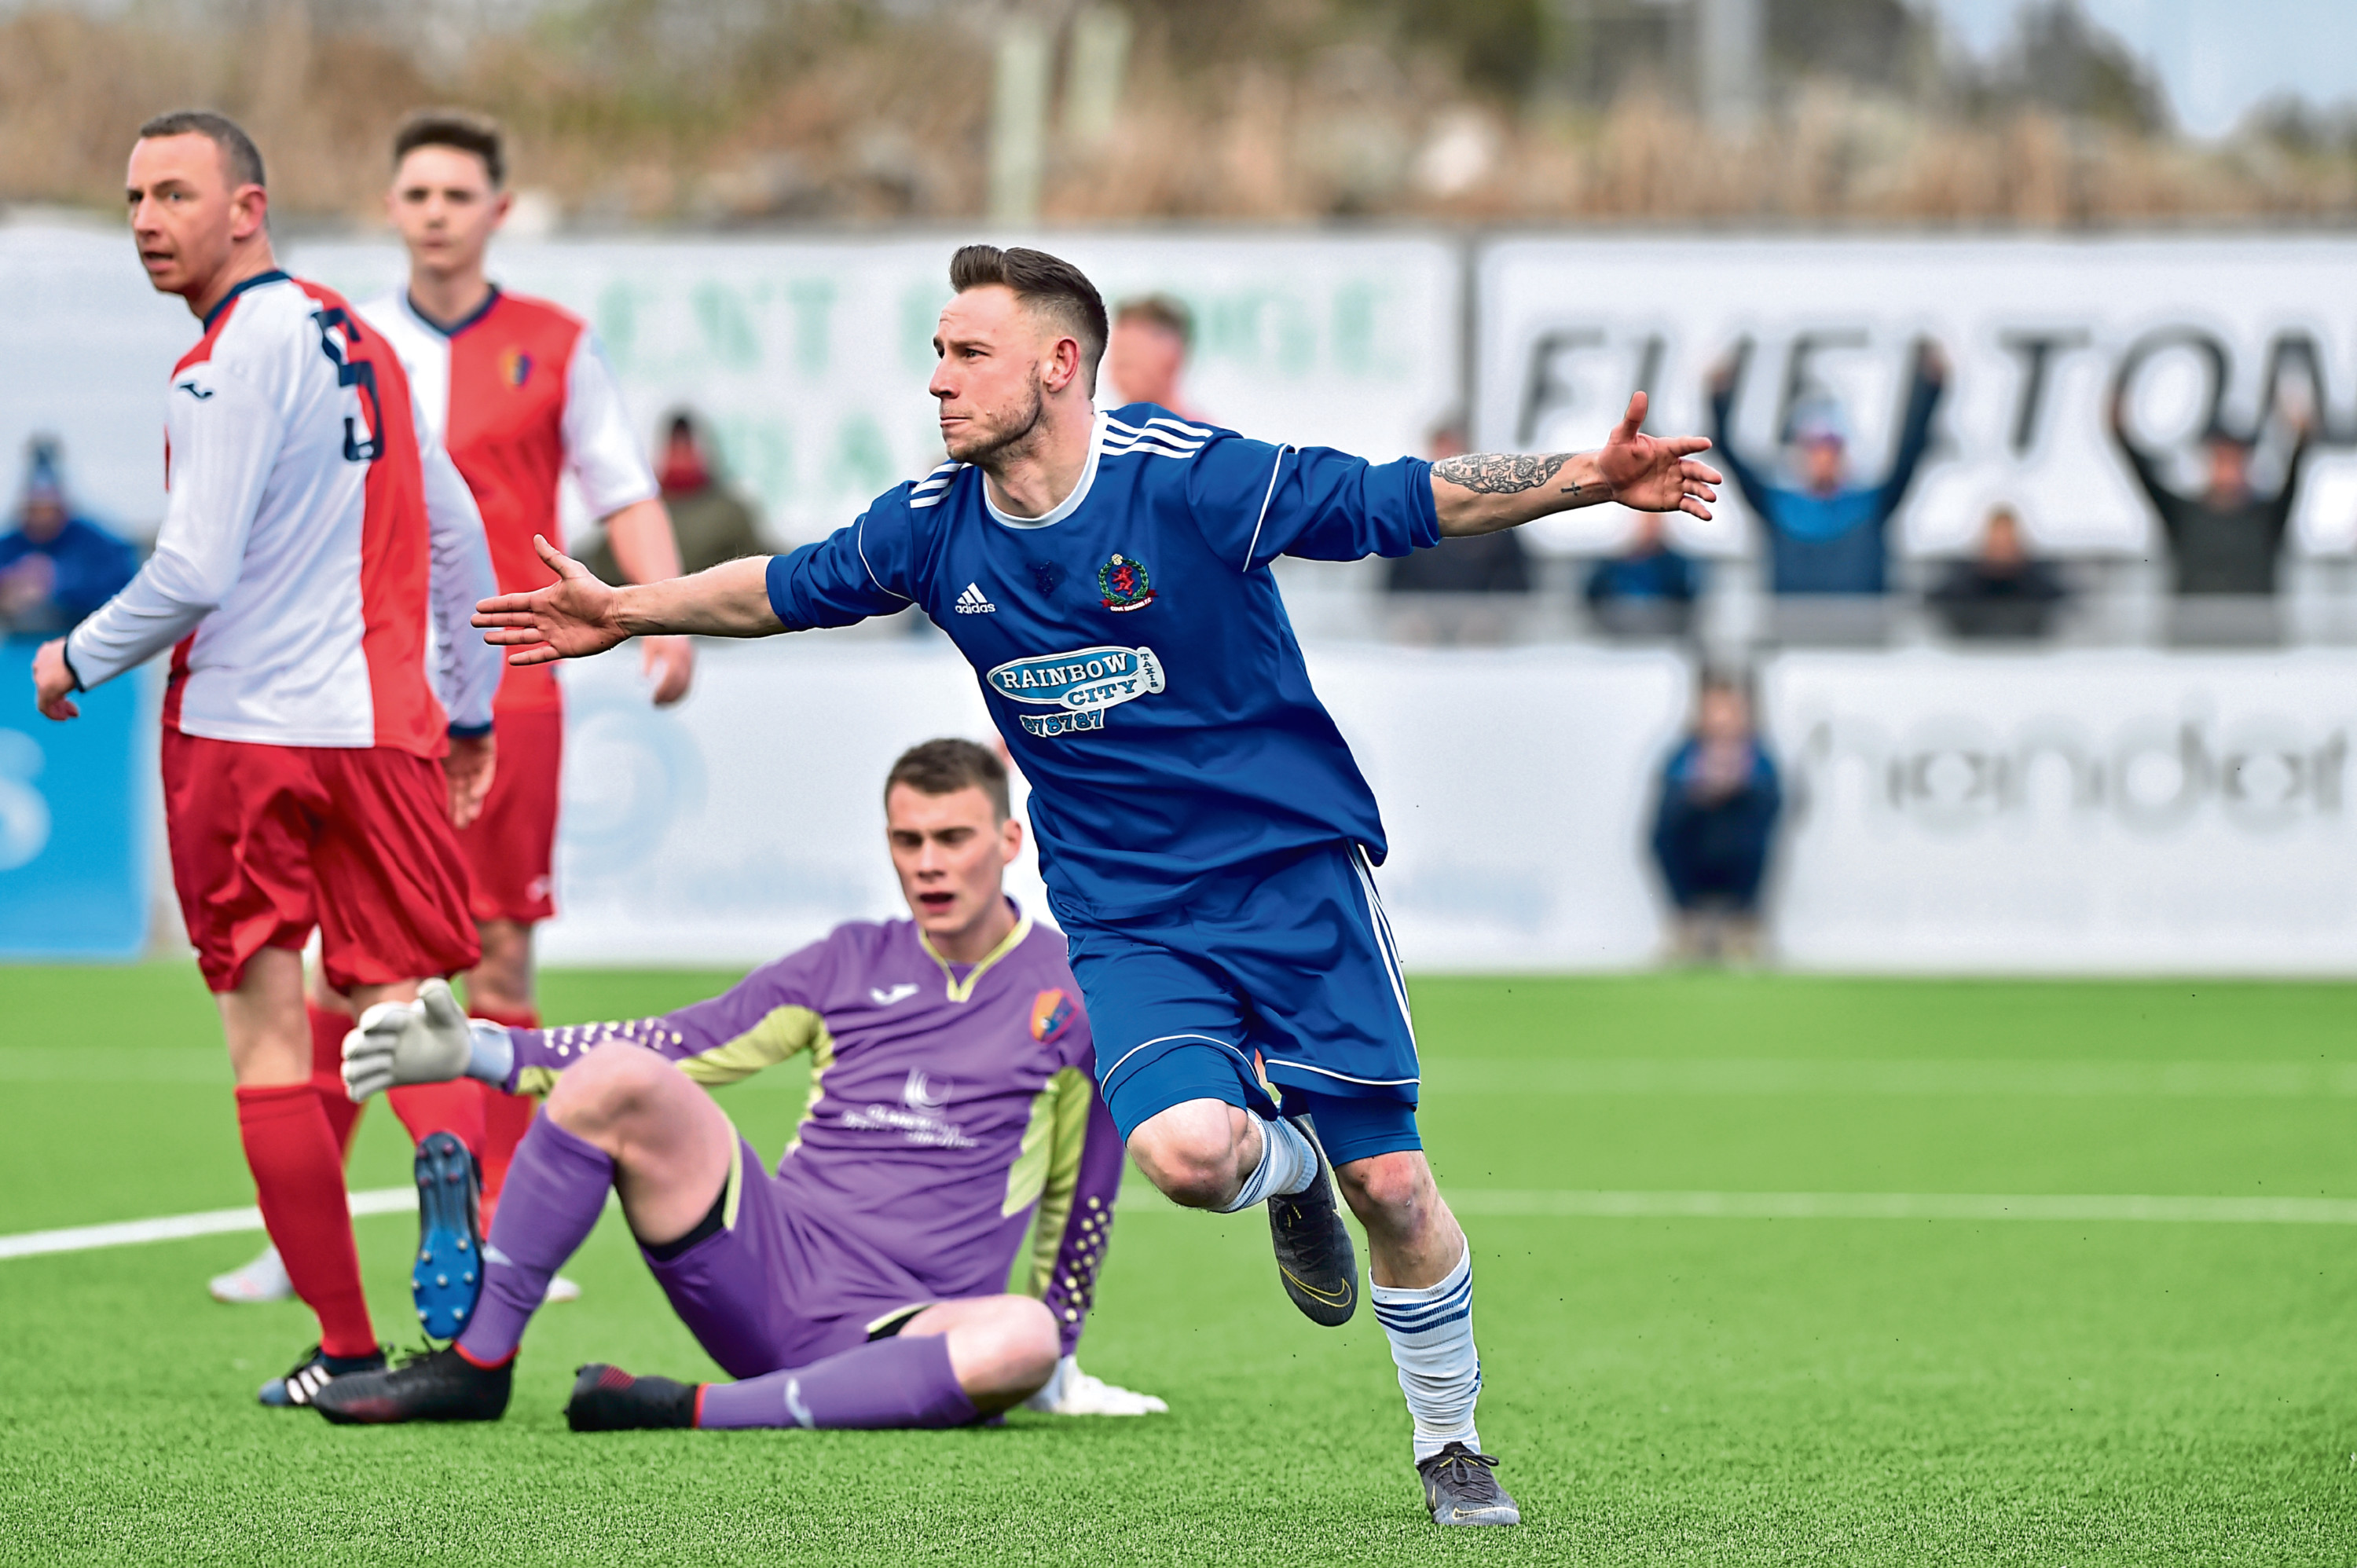 Mitch Megginson celebrates opening the scoring for Cove Rangers against East Kilbride Picture by Scott Baxter